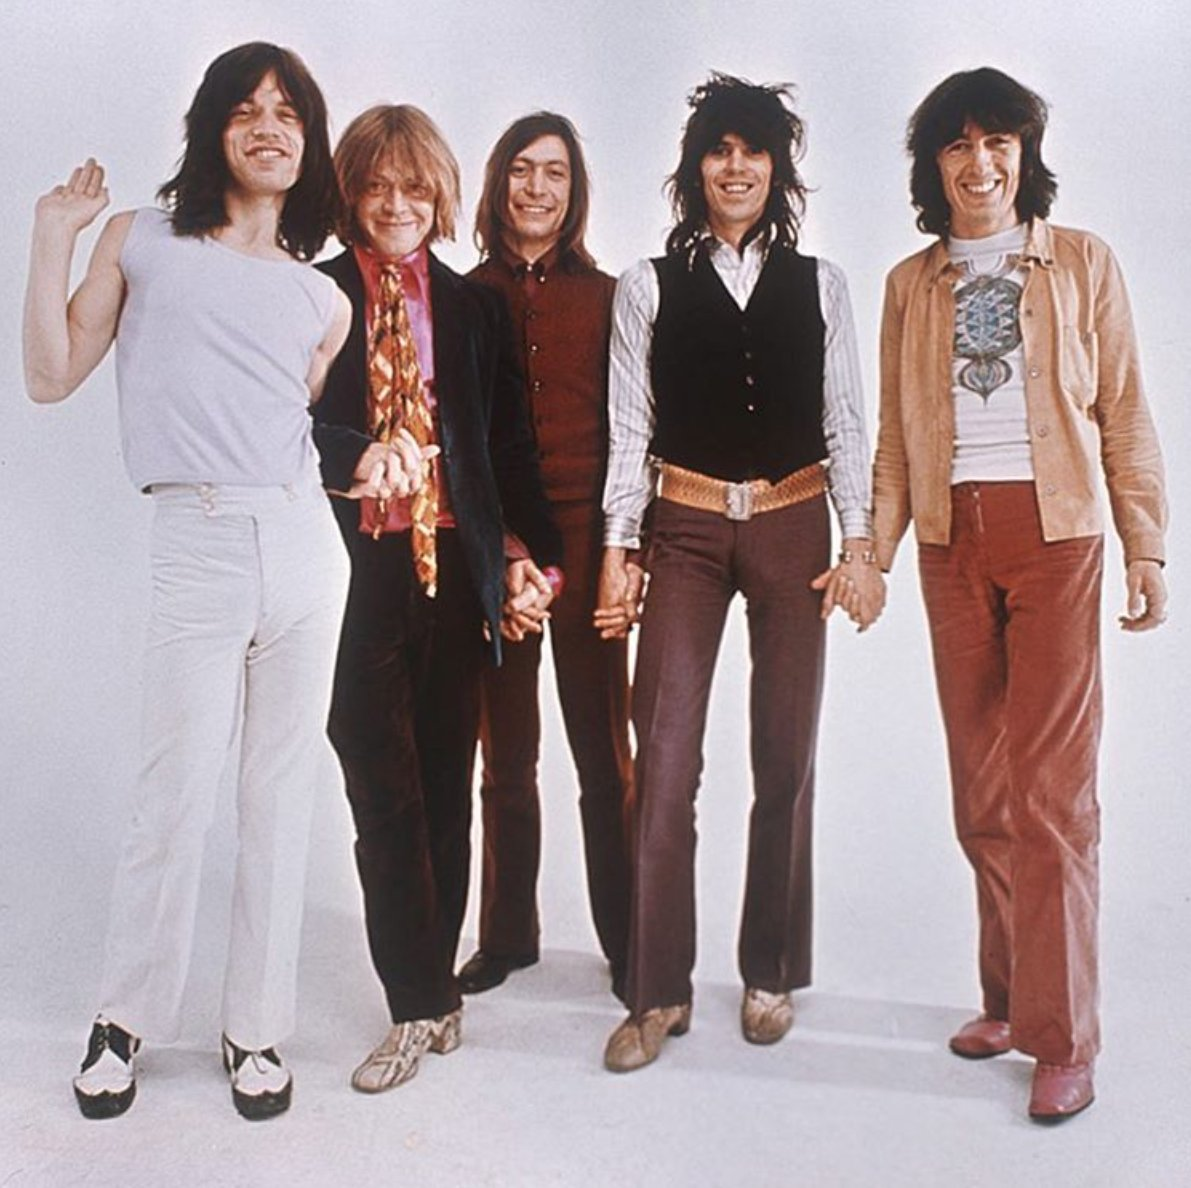 Hold hands and smile! The Stones photographed in 1969 by Ethan Russell...